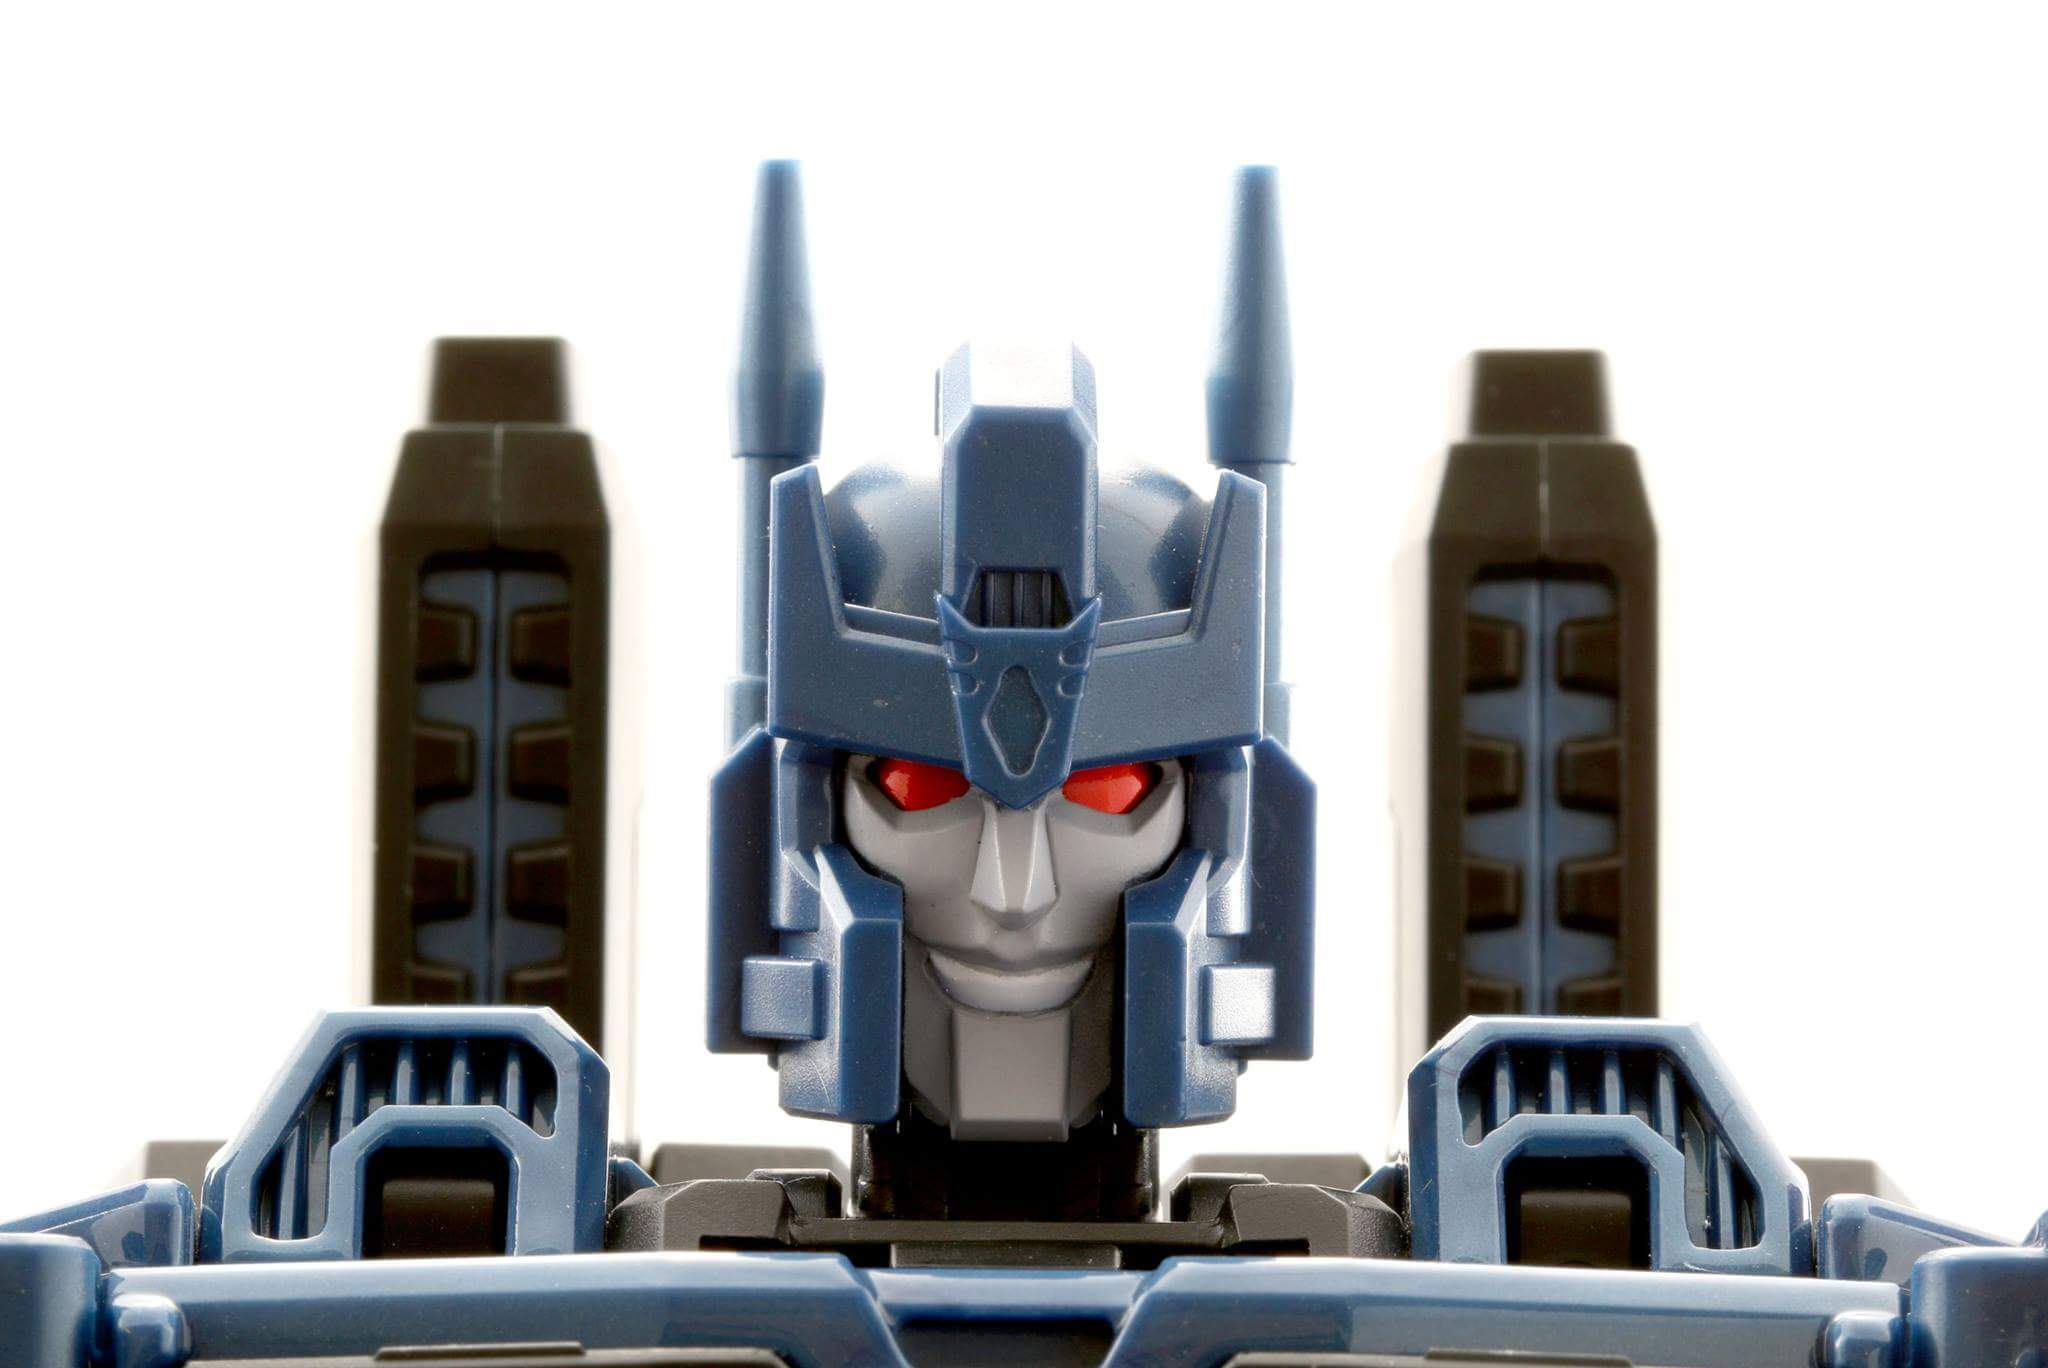 [Mastermind Creations] Produit Tiers - R-17 Carnifex - aka Overlord (TF Masterforce) - Page 3 4xH3dZU5